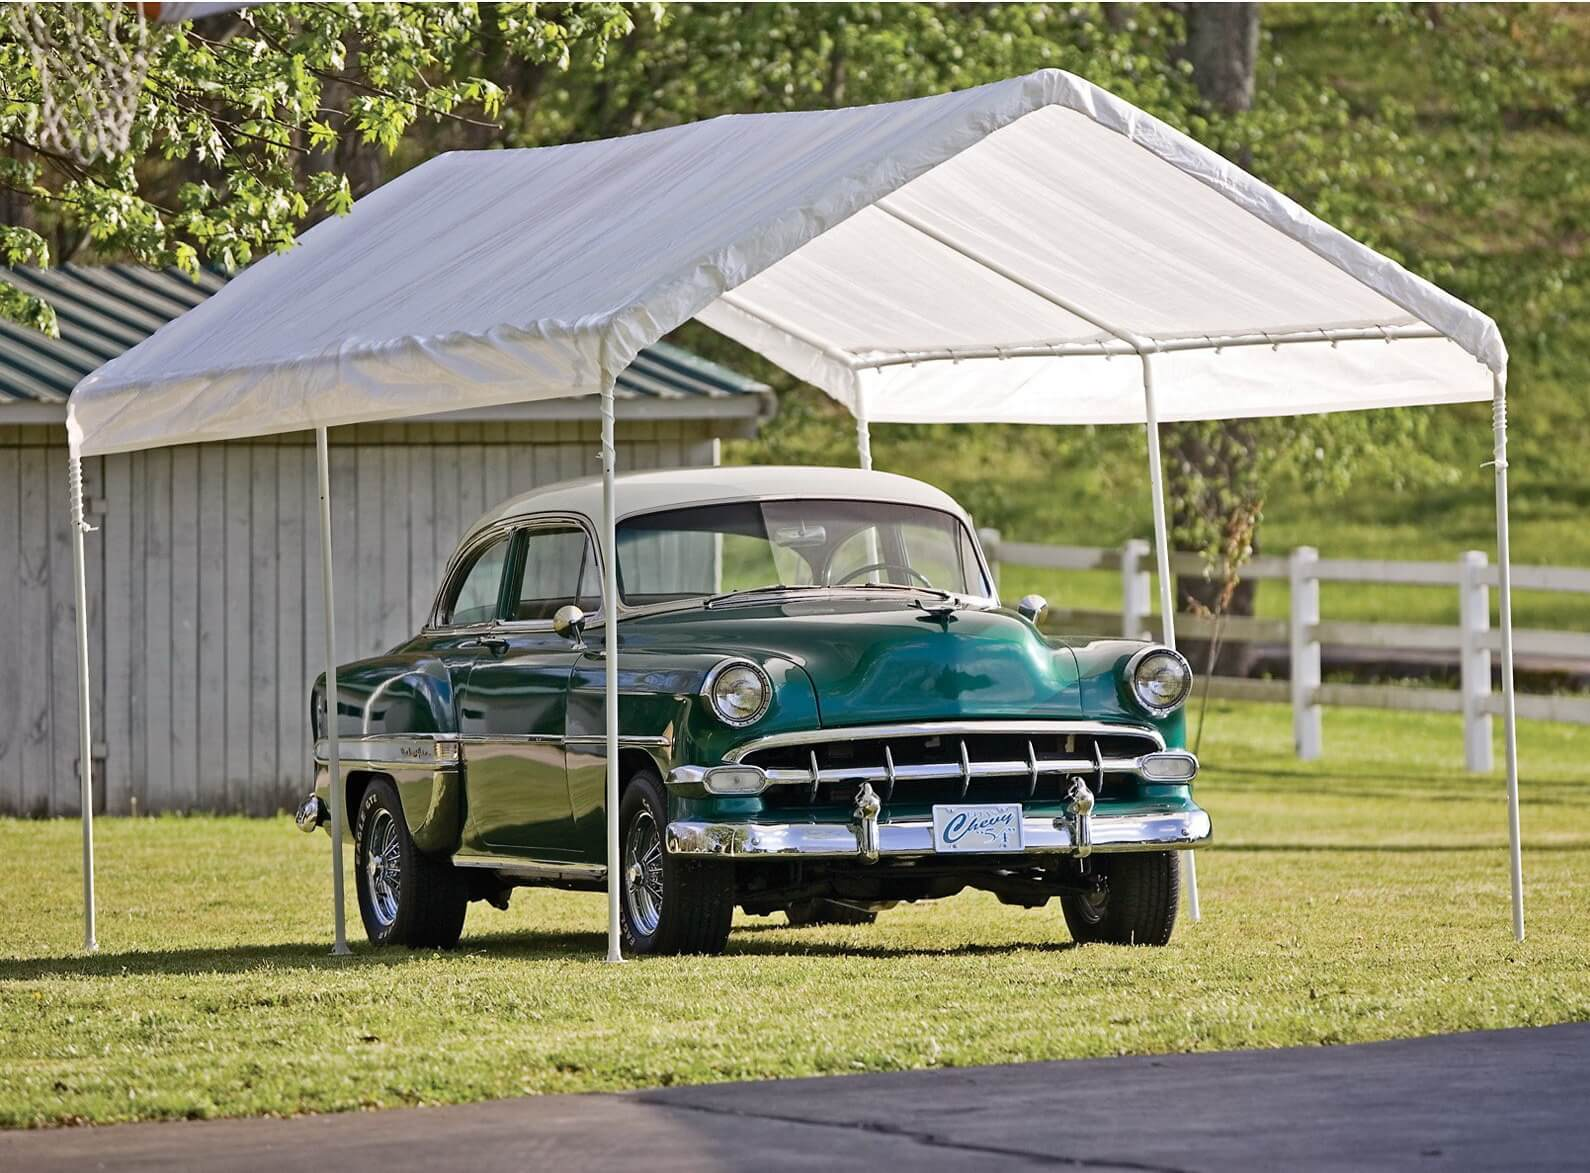 Car Canopy and Portable Garage Featured